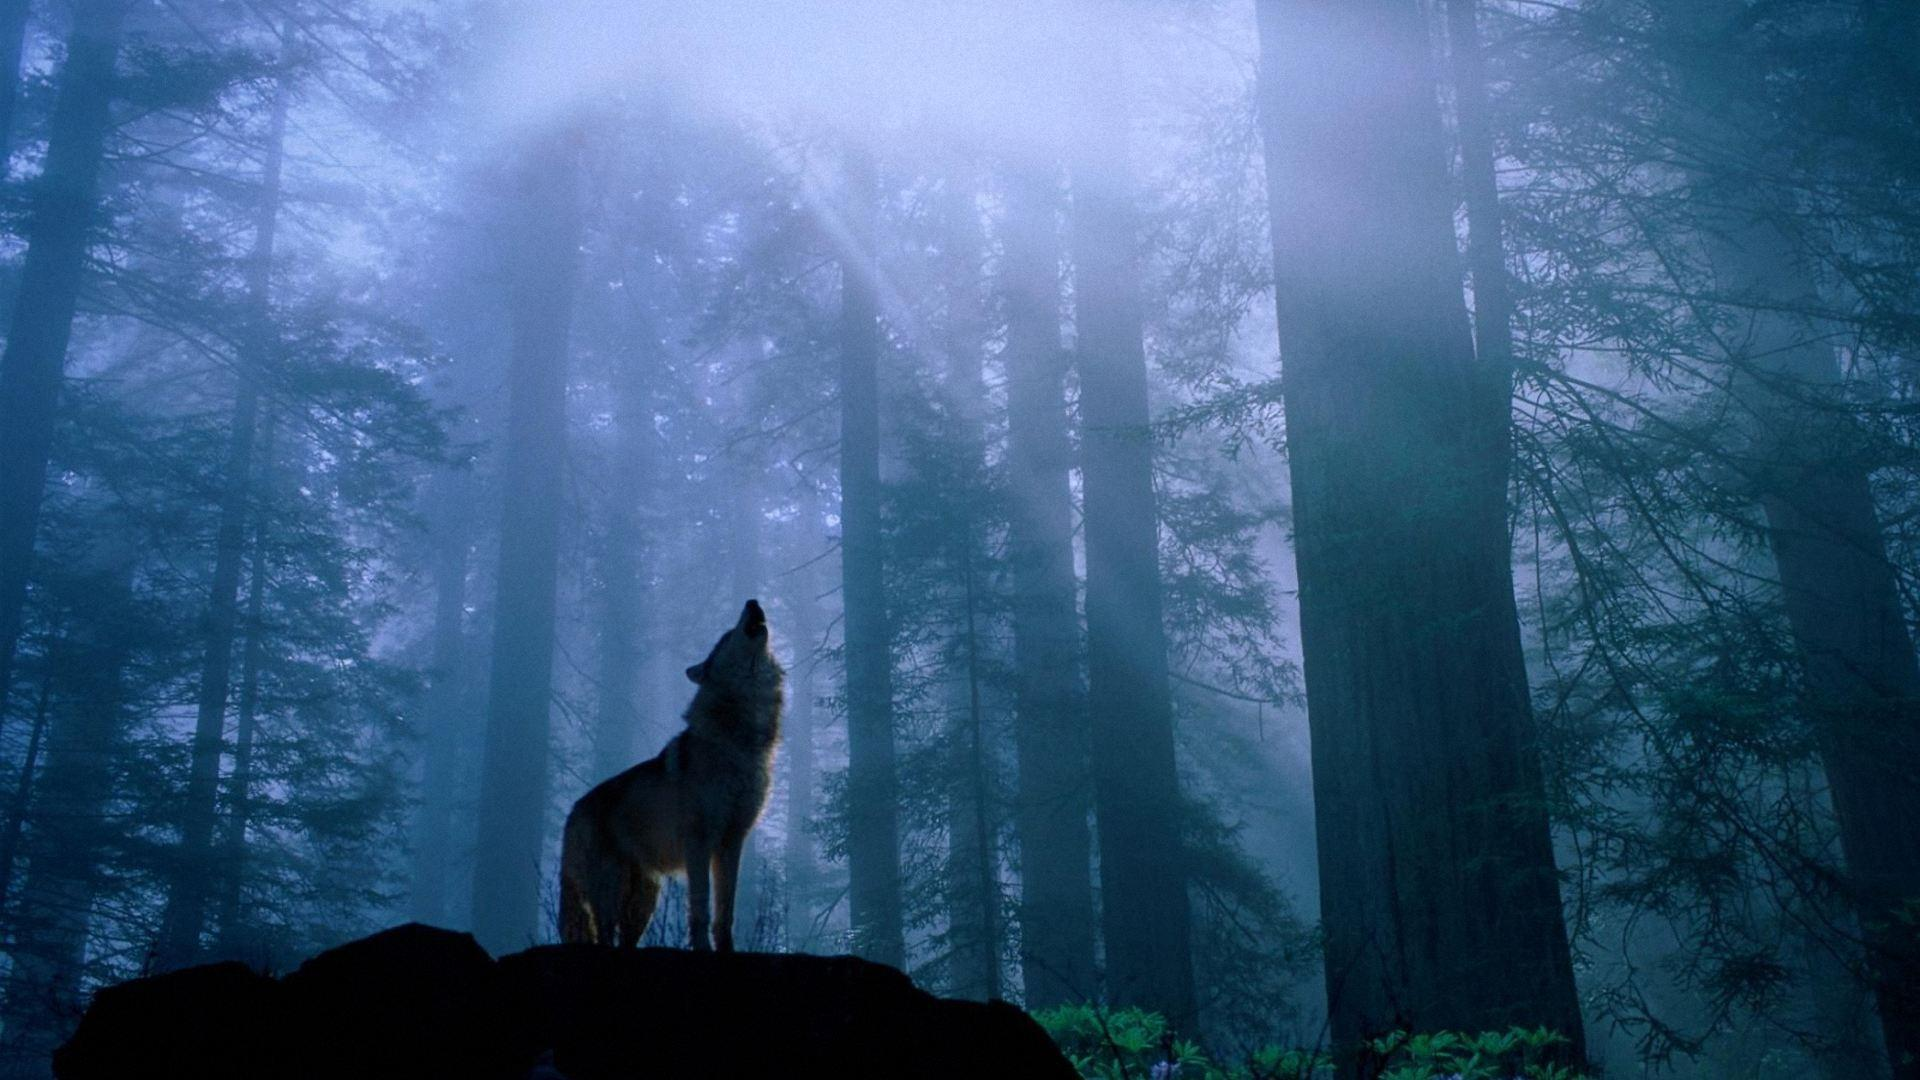 Anime Wolf Wallpaper - Wallpapers Browse